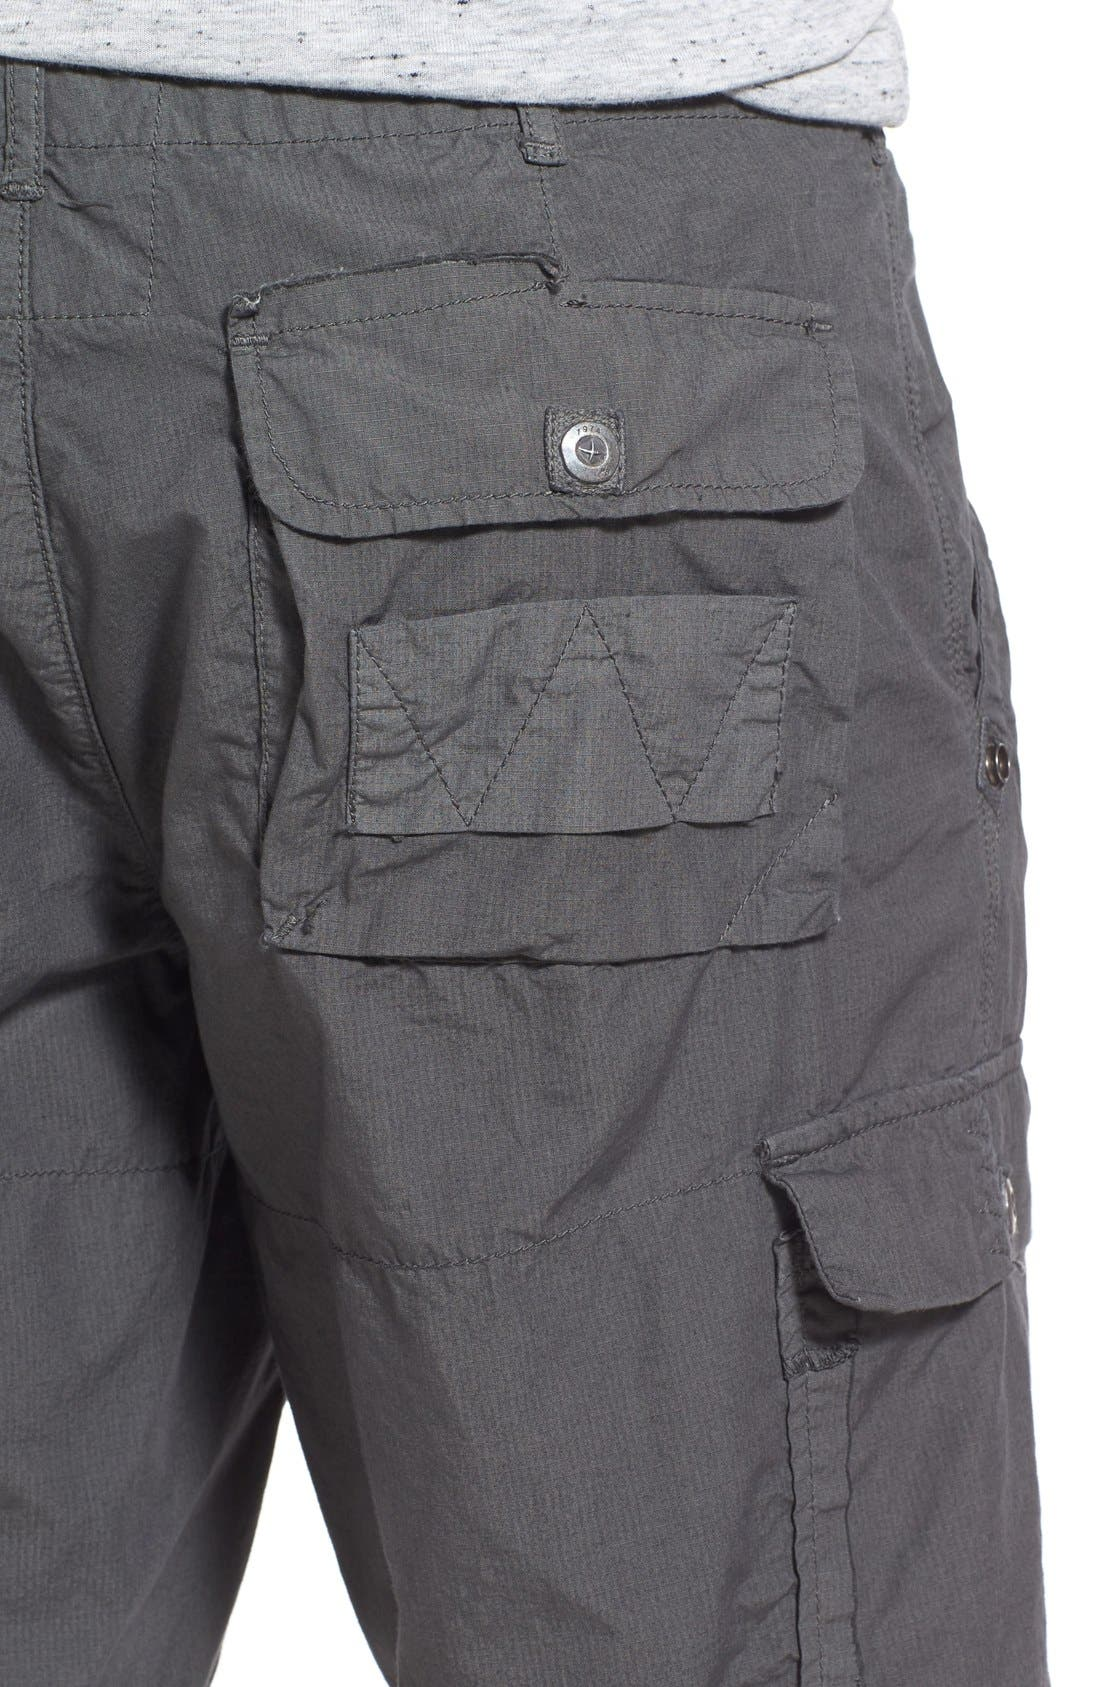 'Havasu' Cargo Shorts,                             Alternate thumbnail 17, color,